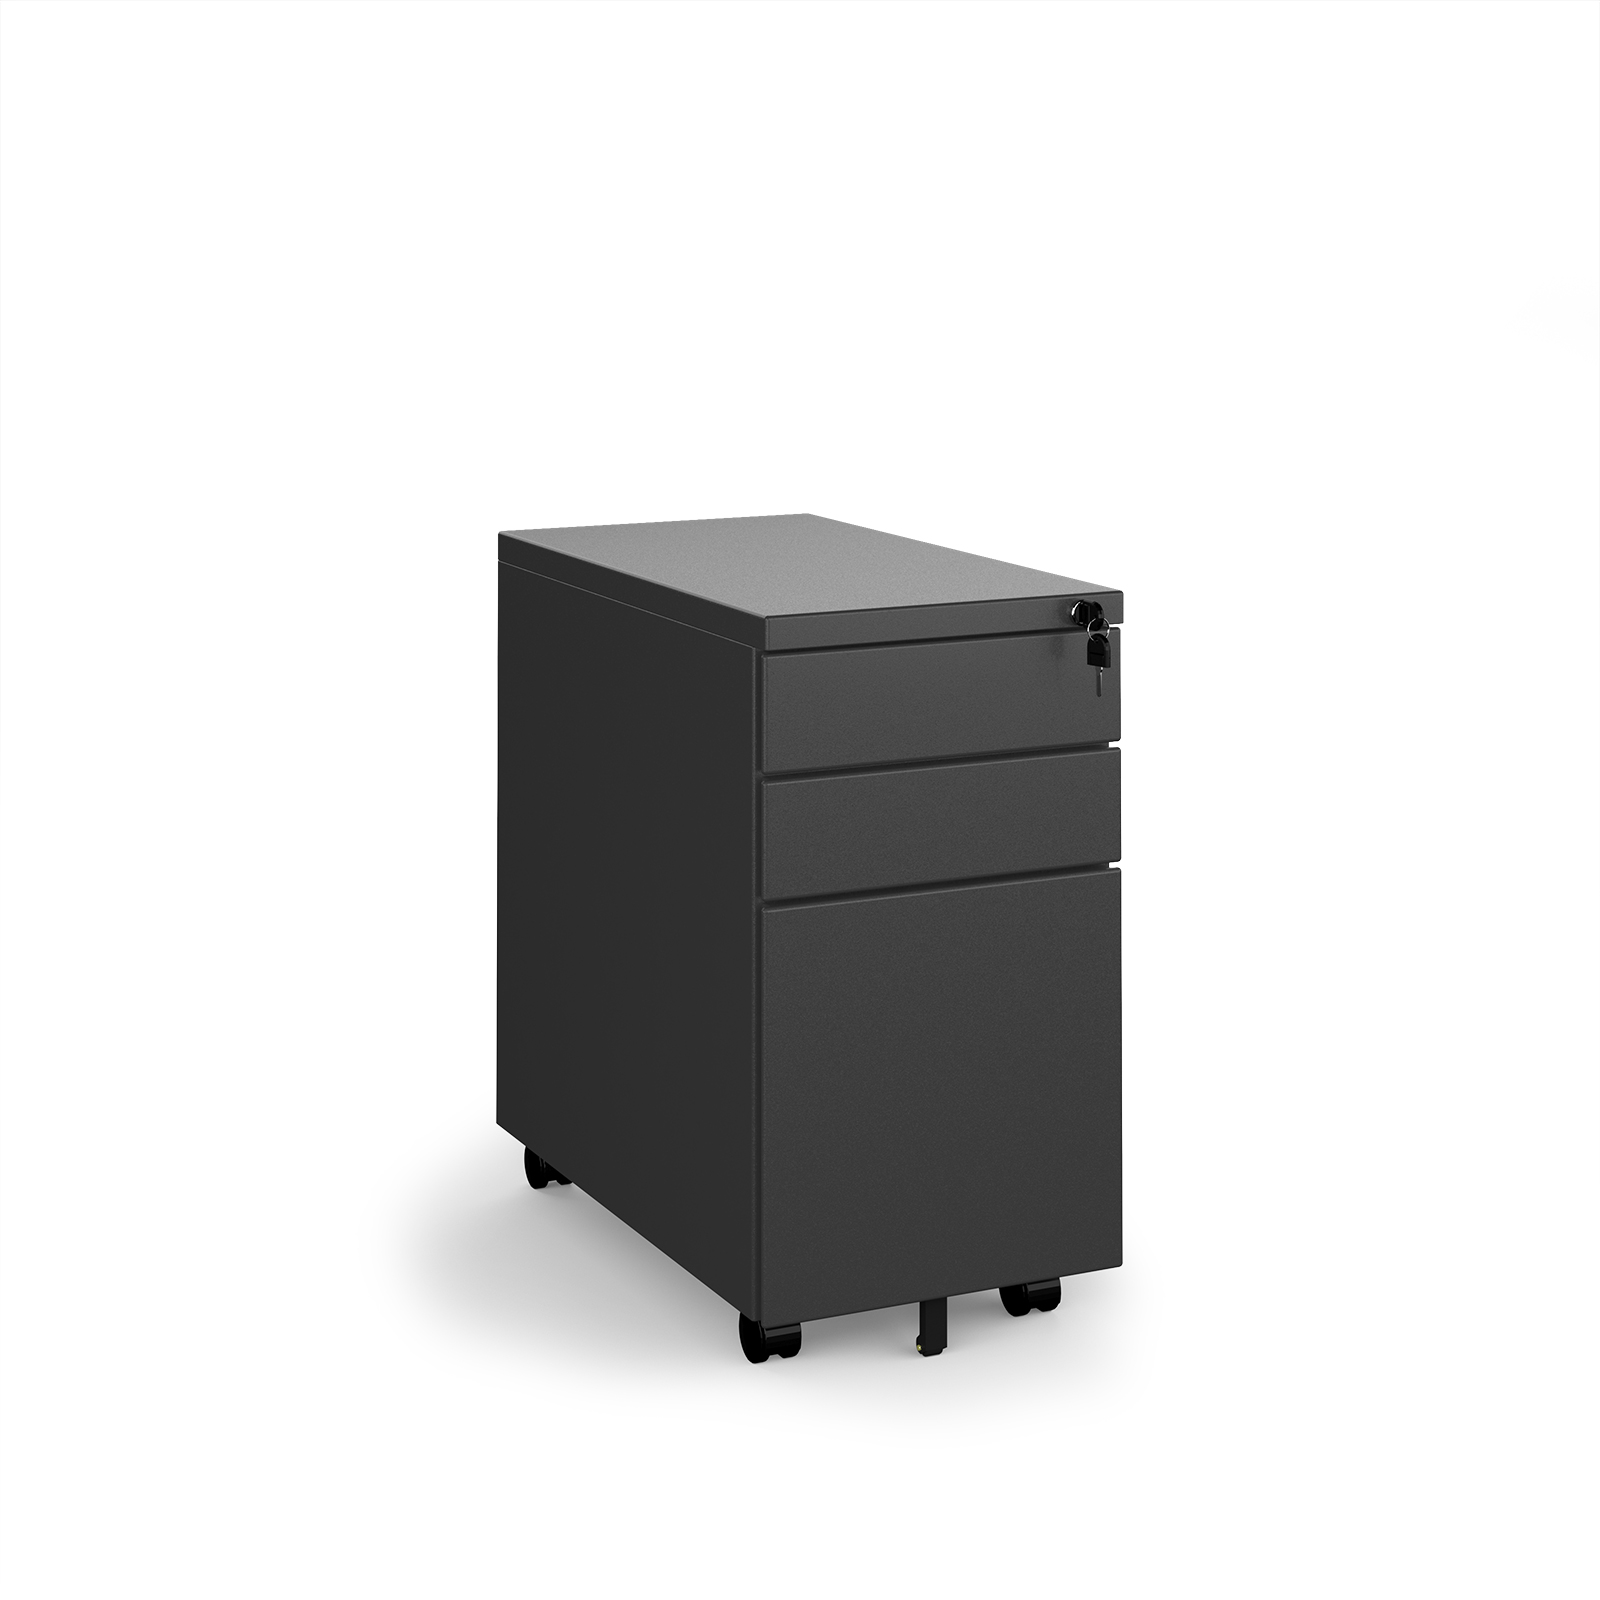 Steel 3 drawer narrow mobile pedestal - black